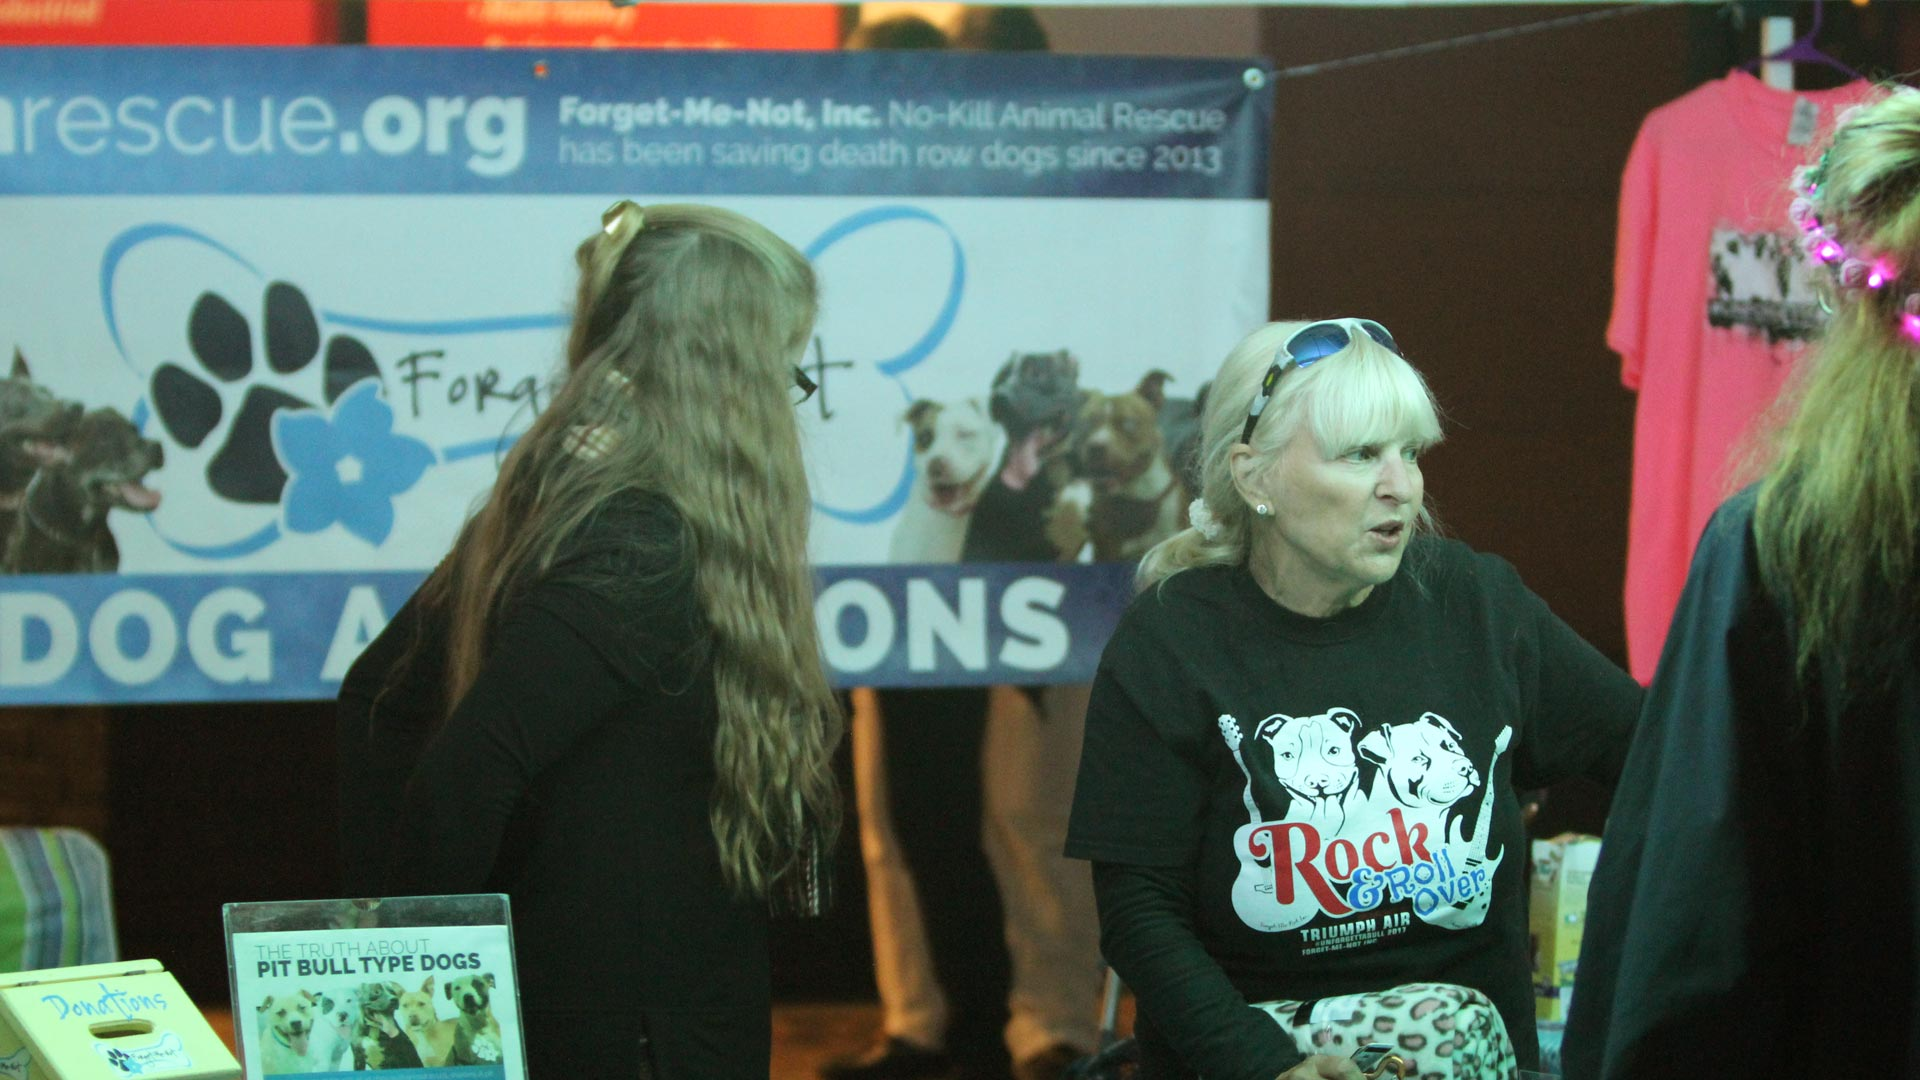 Rock N Roll Over fundraising event to raise money to care for our dogs at Forget-Me-Not Inc..